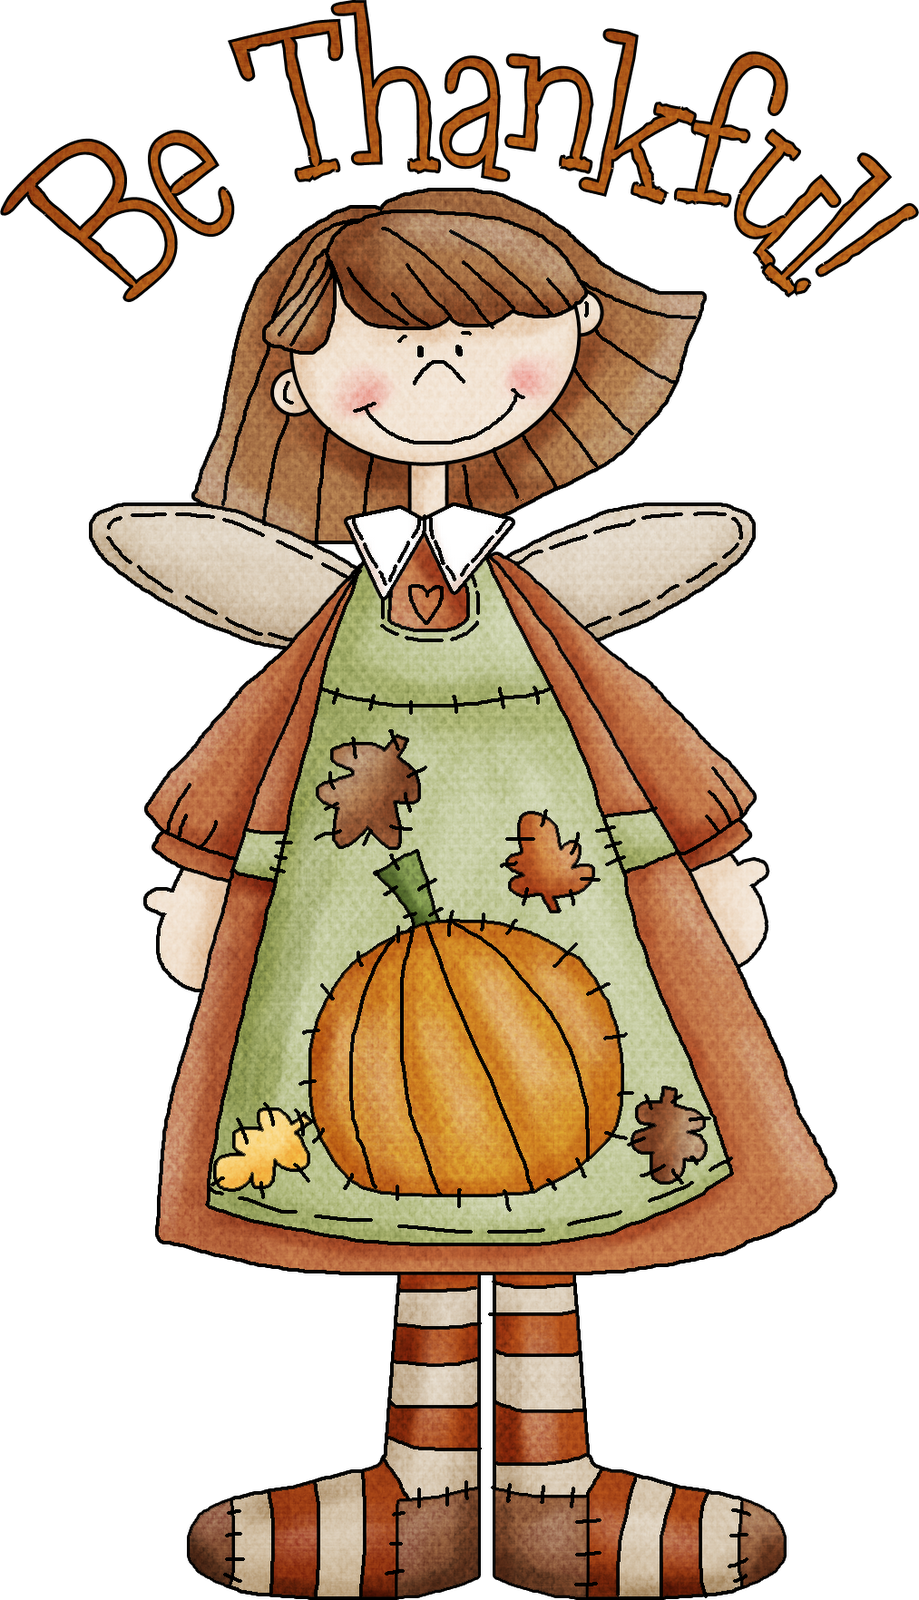 Clipart of blessed thanksgiving image royalty free Thanking God for everything! Enjoying my blessings with a thankful ... image royalty free